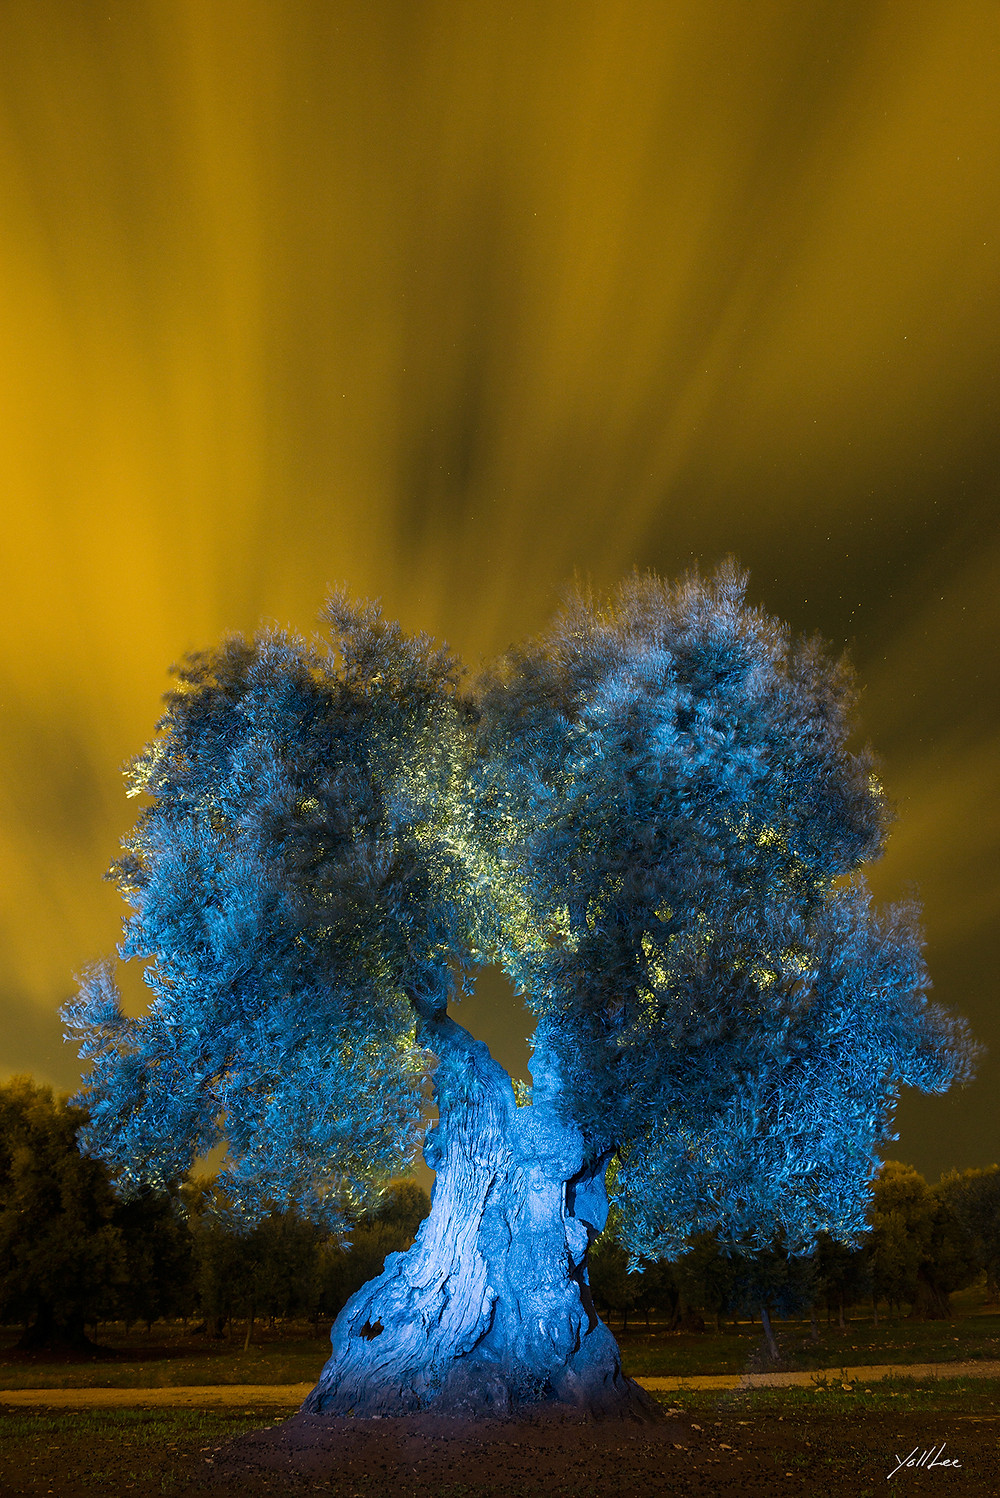 Flowing of orange clouds and blue olive tree  93x138cm 10 limited edition hahnemuhle Baryta FB, pigment ink-jet print